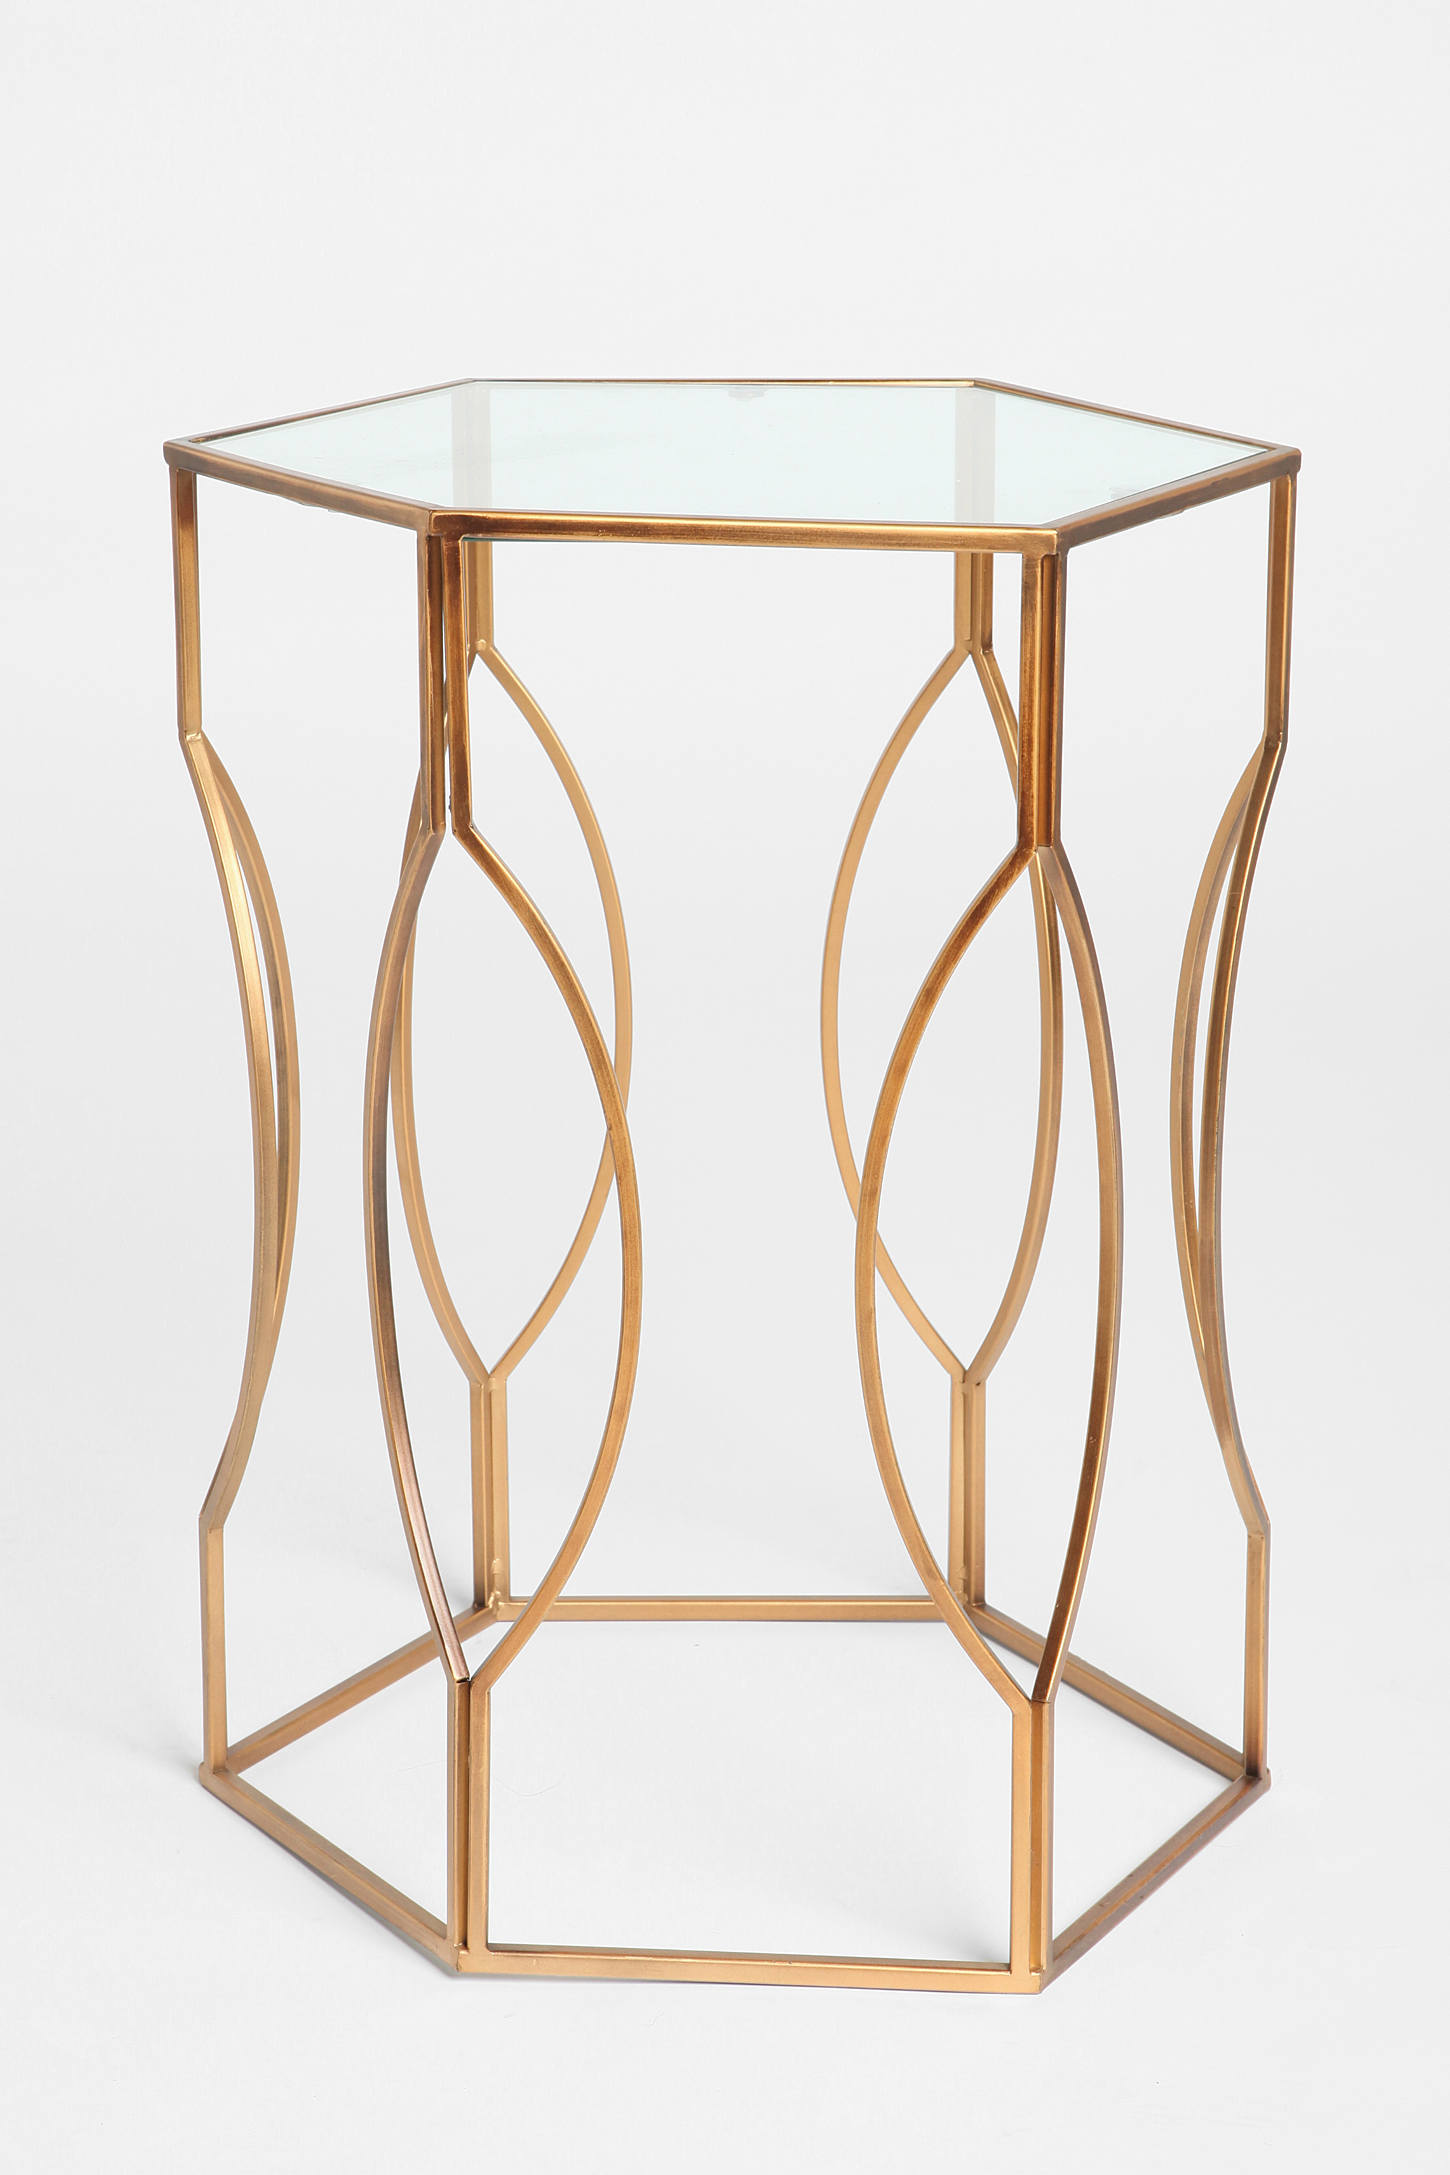 Slide View: 1: Hexagon Side Table - Hexagon Side Table Urban Outfitters